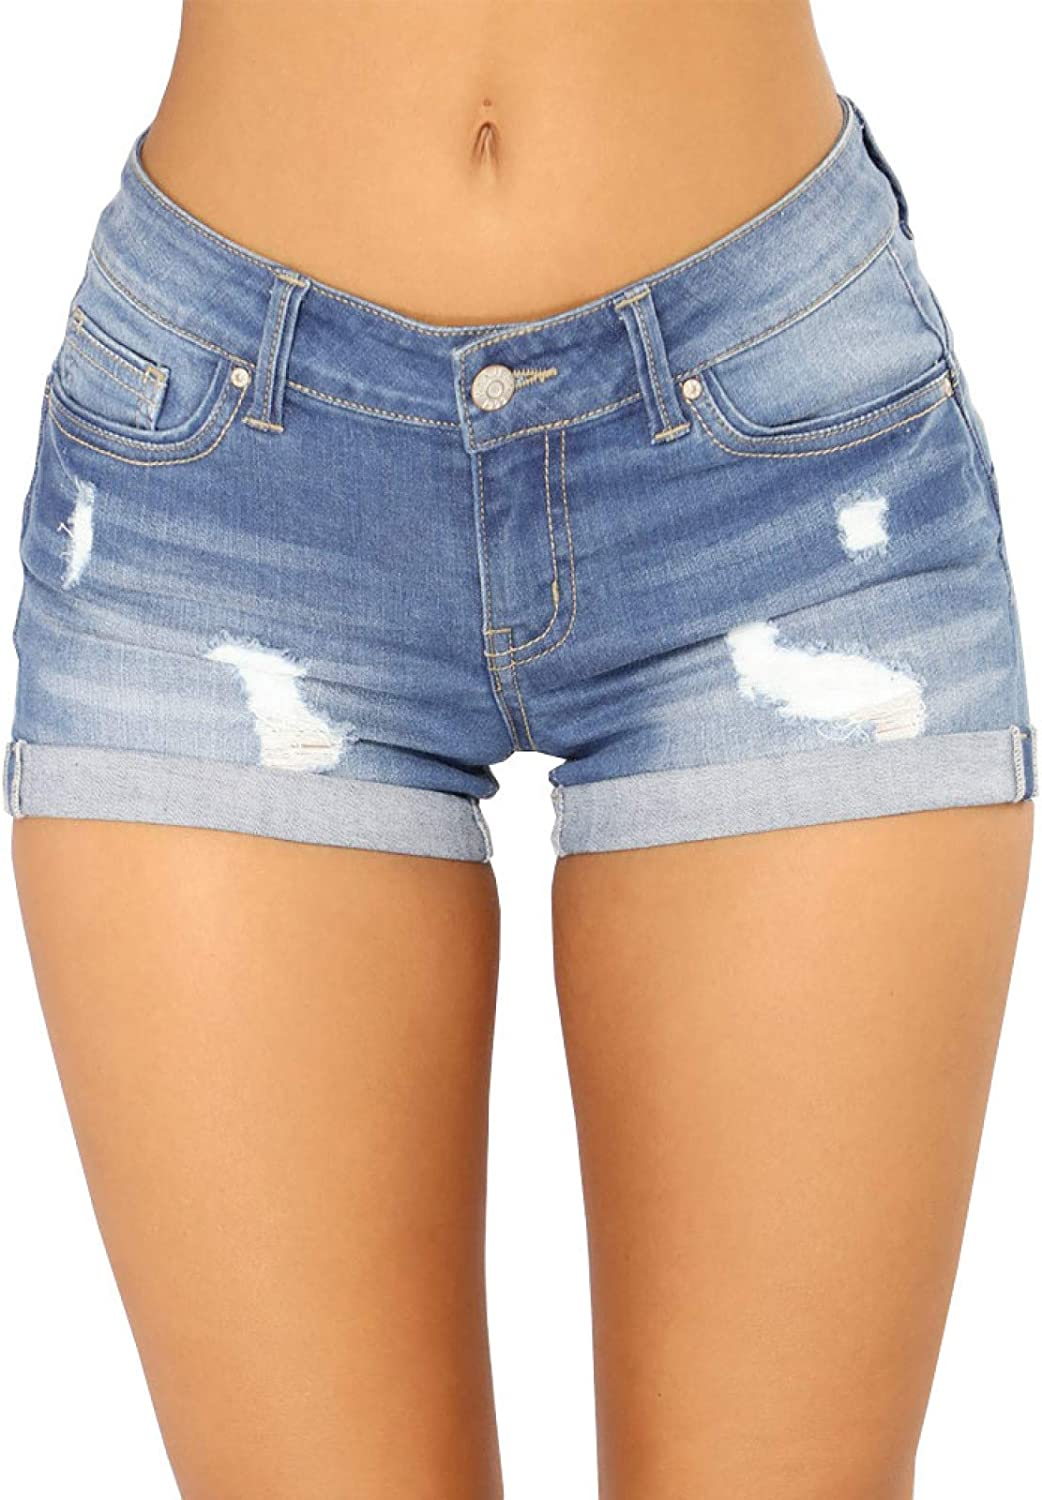 Women's Ripped Denim Shorts Fashion Low Waist Sexy Trendy All-Match Washed